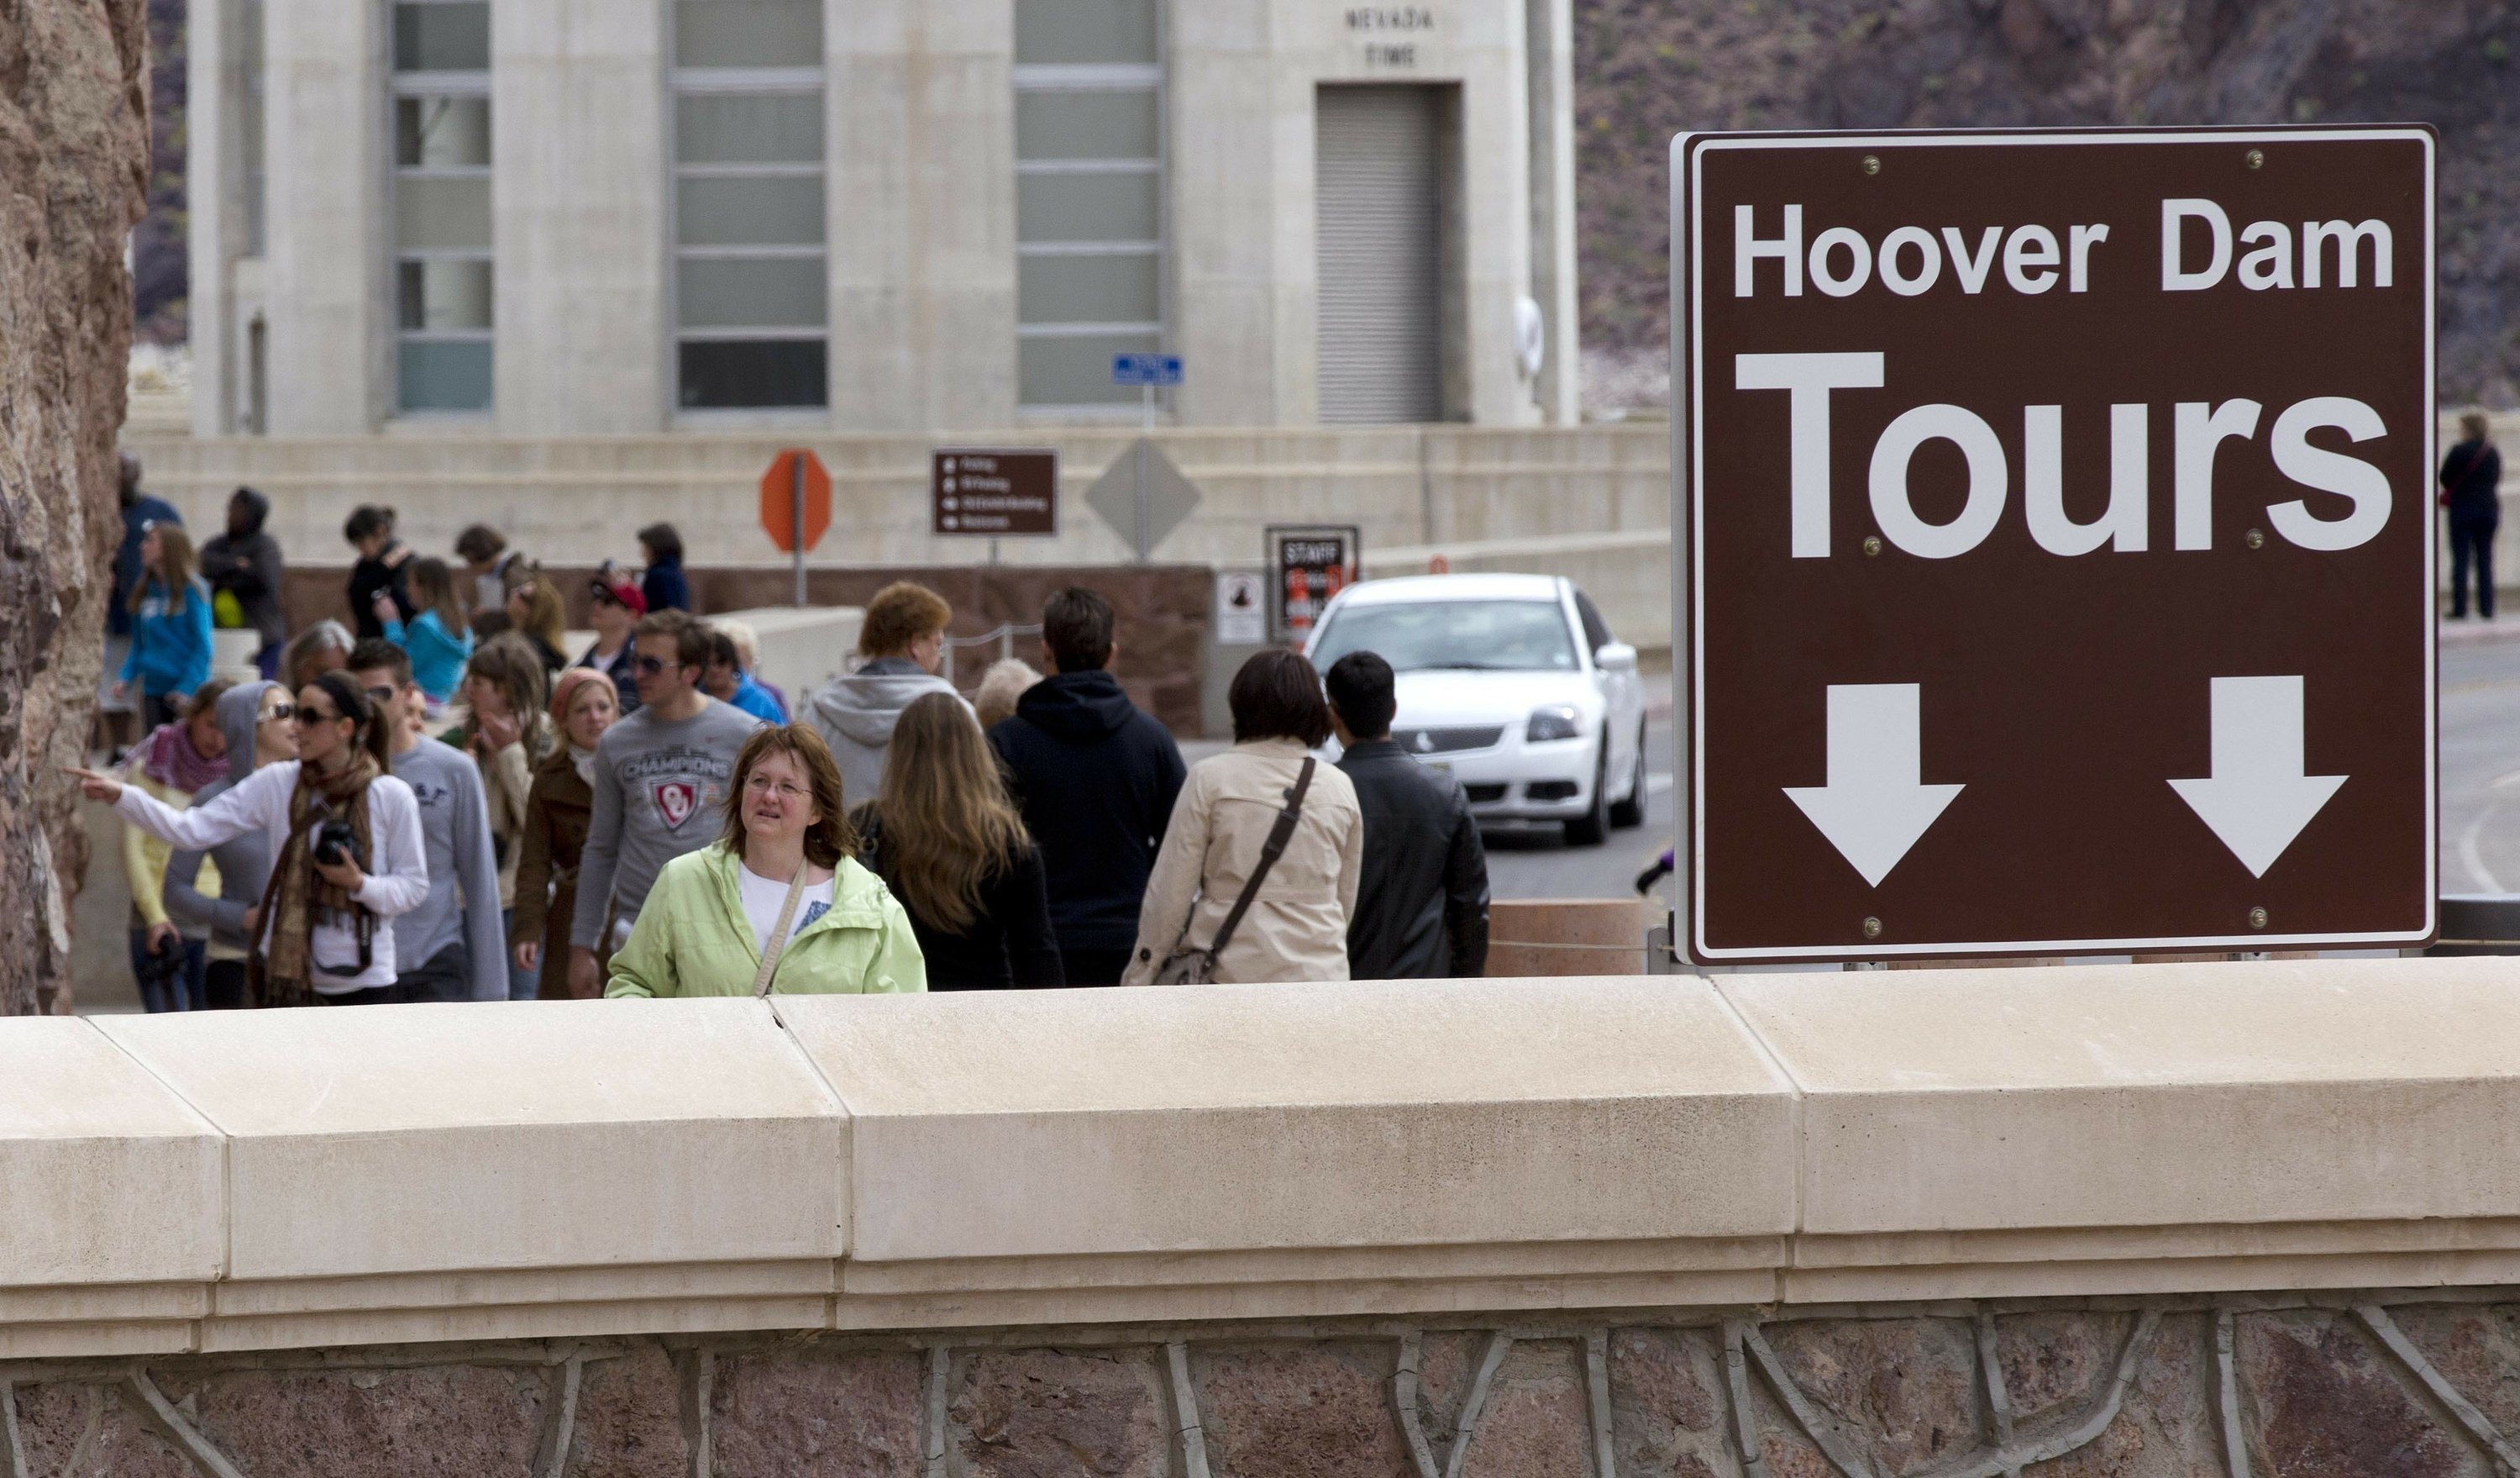 Hoover Dam to cut back on tours during renovations